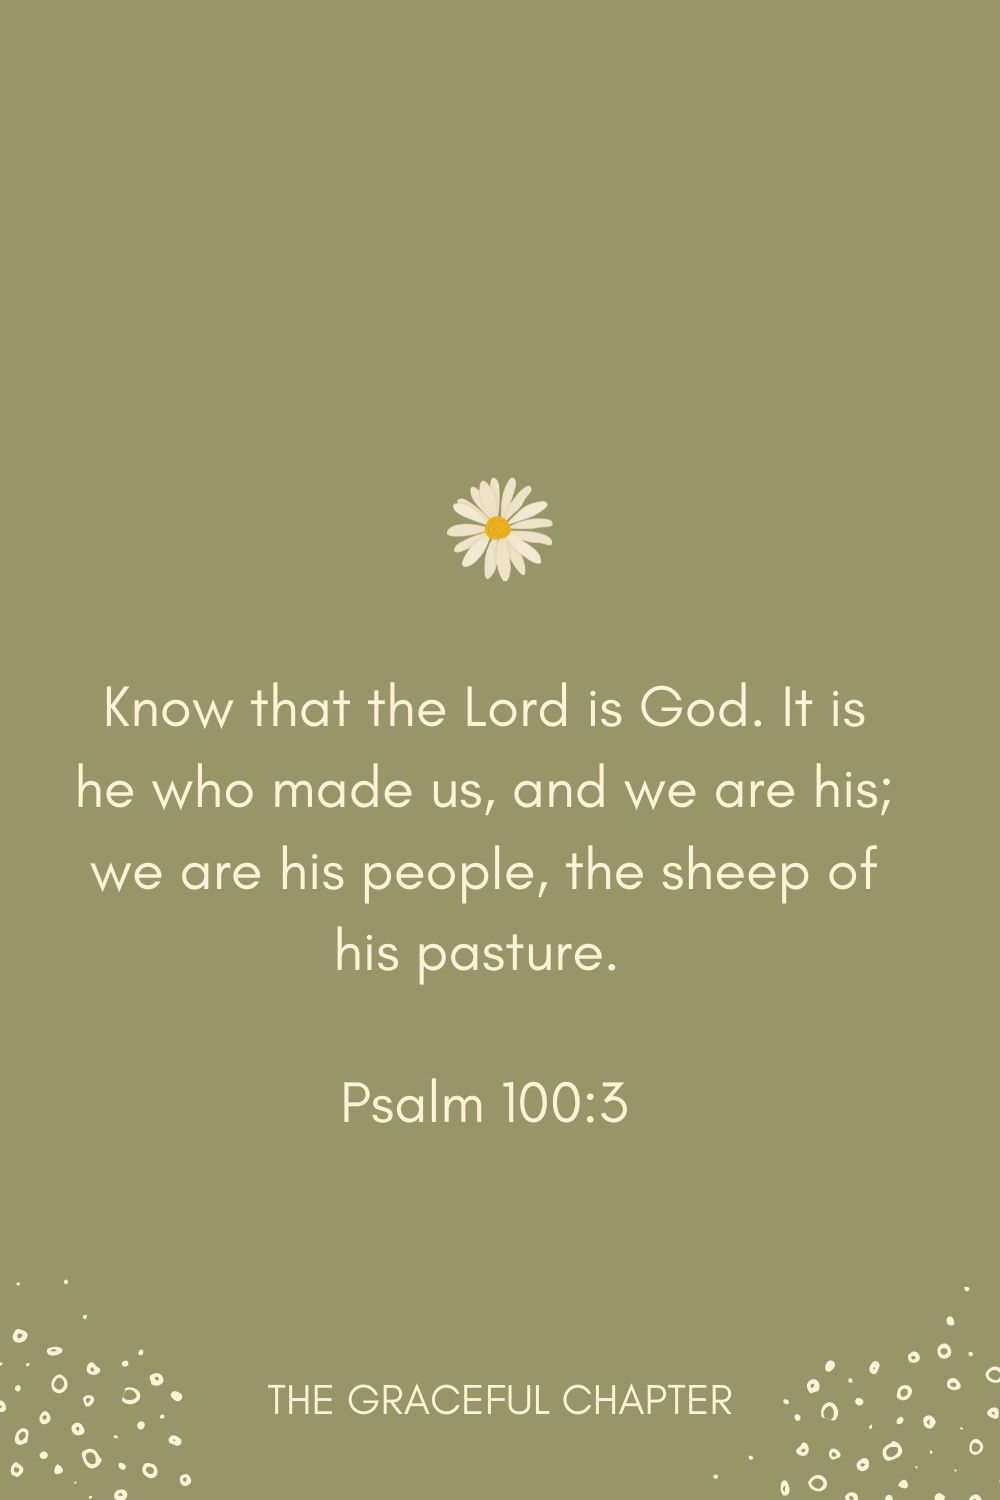 Know that the Lord is God. It is he who made us, and we are his; we are his people, the sheep of his pasture. Psalm 100:3